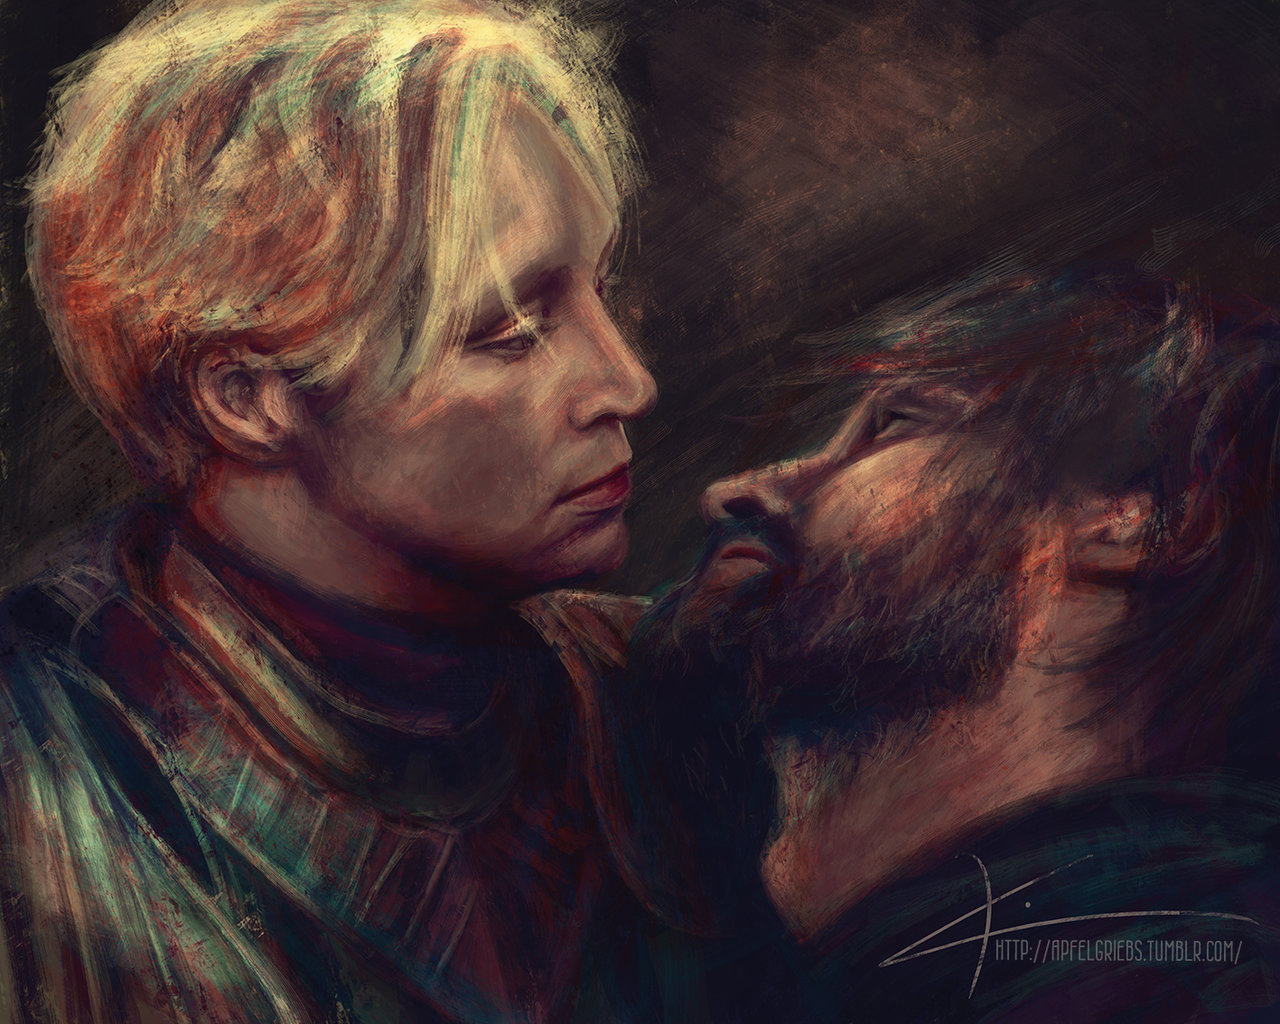 Brienne of Tarth and Jaime Lannister art